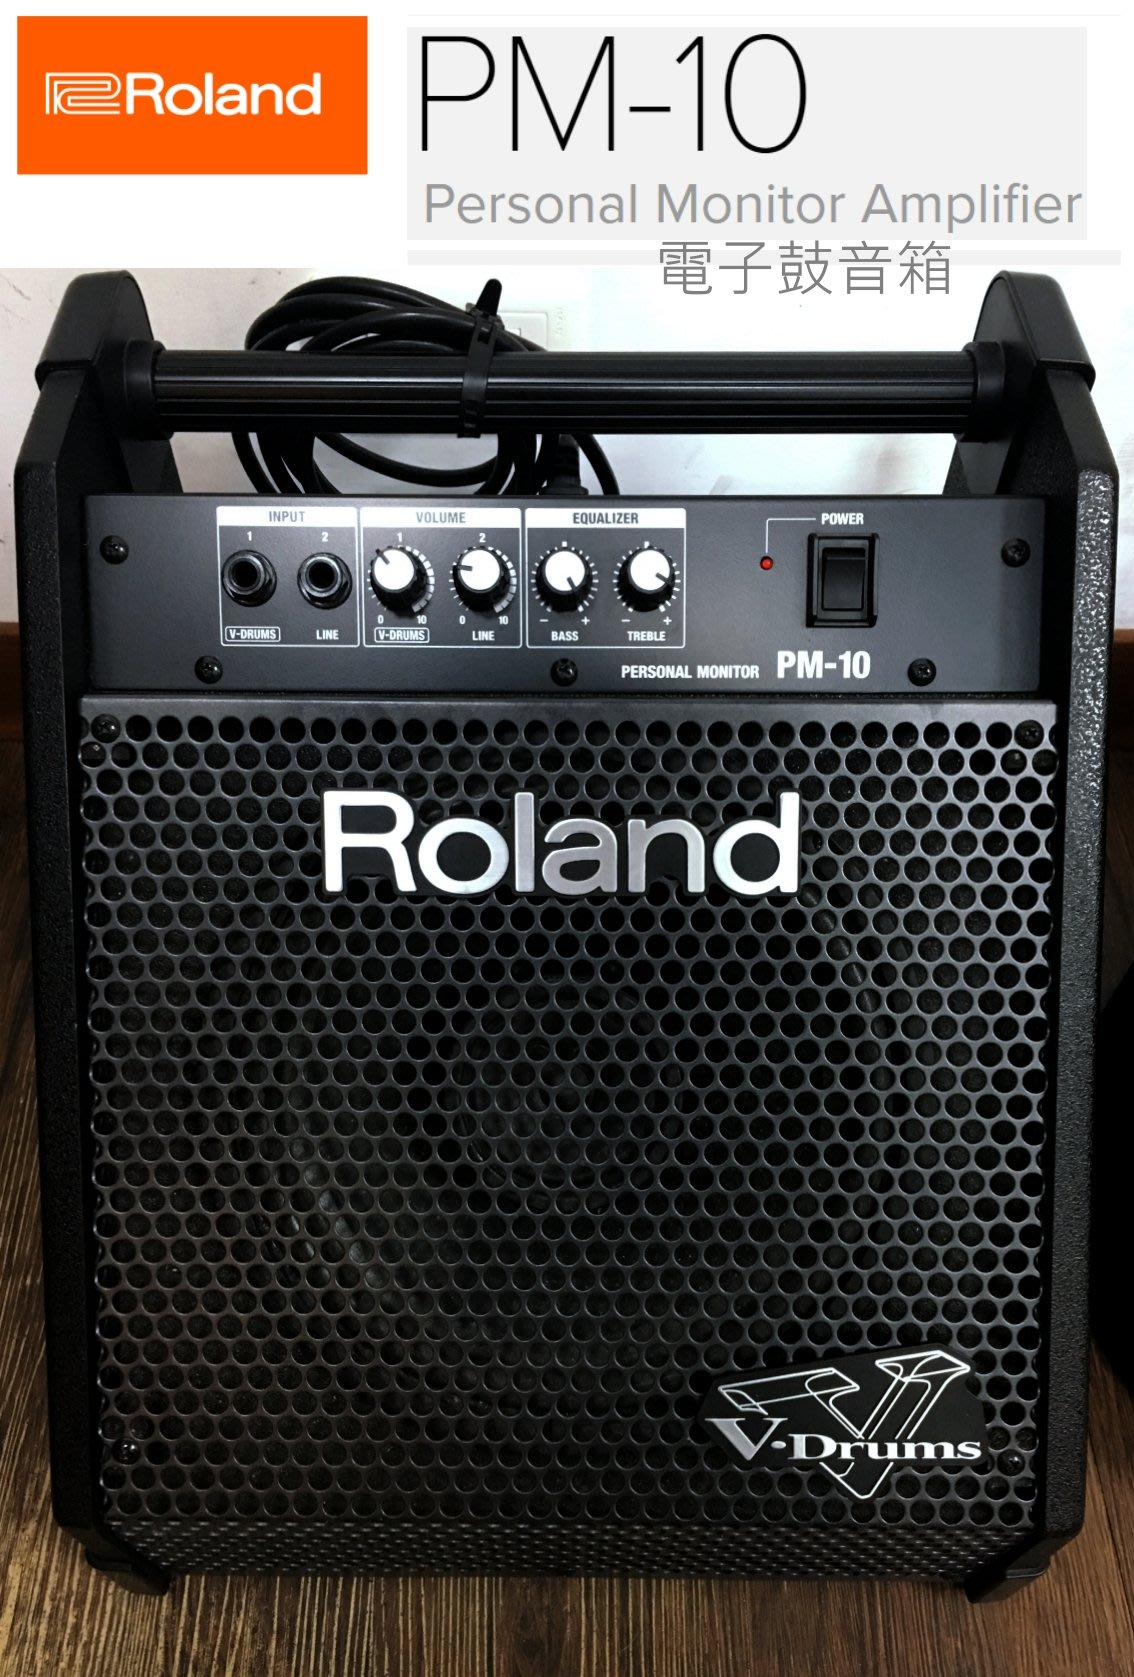 Roland PM-10 Personal Monitor Amplifier 電子鼓監聽音箱